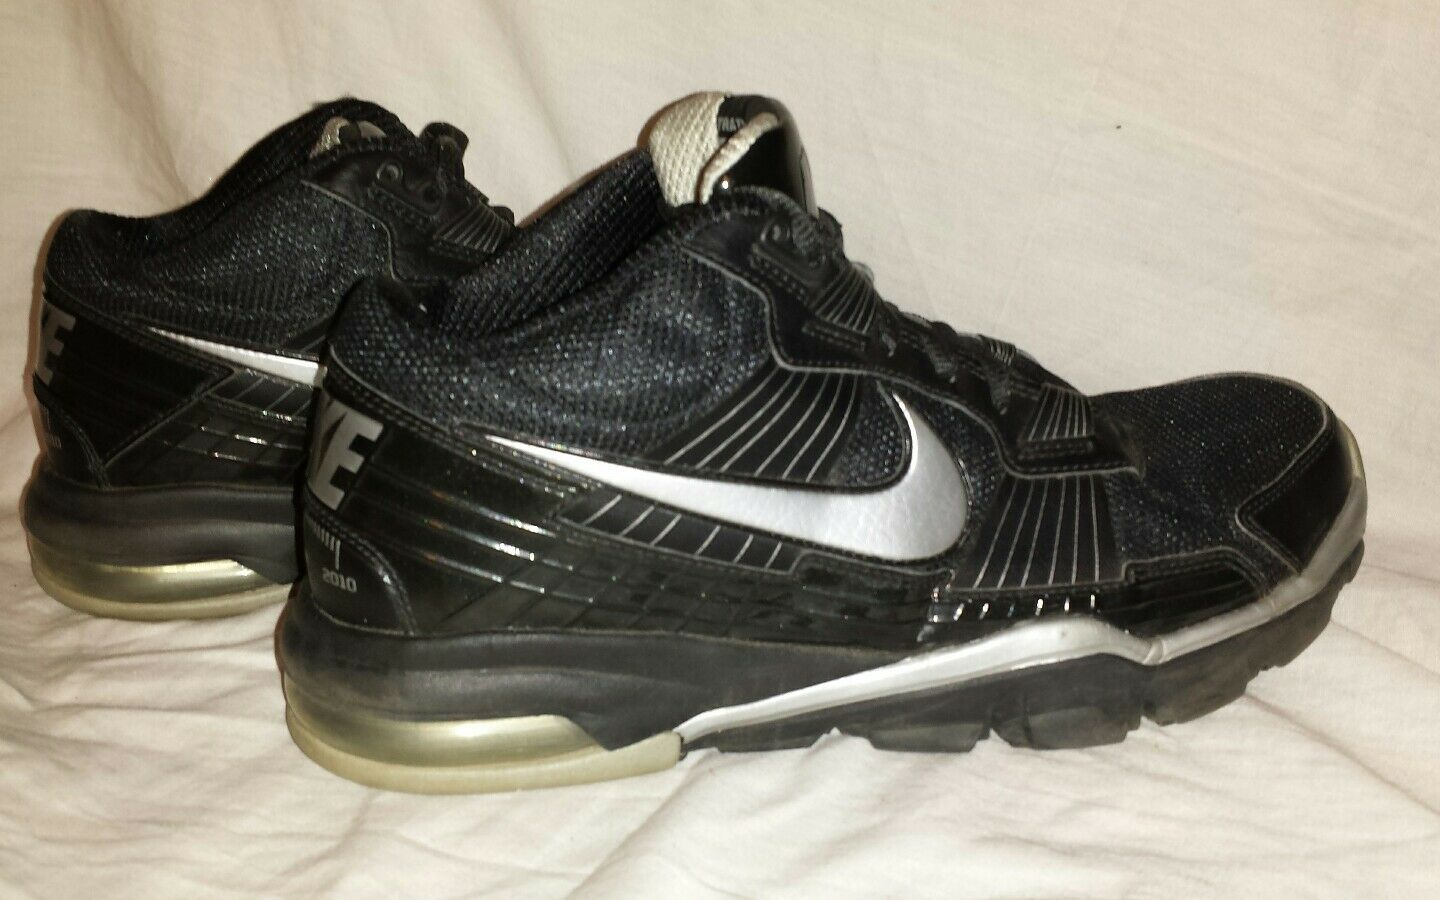 Nike BO JACKSON Trainer SC 2018 Shoes Black/Silver Comfortable Comfortable and good-looking